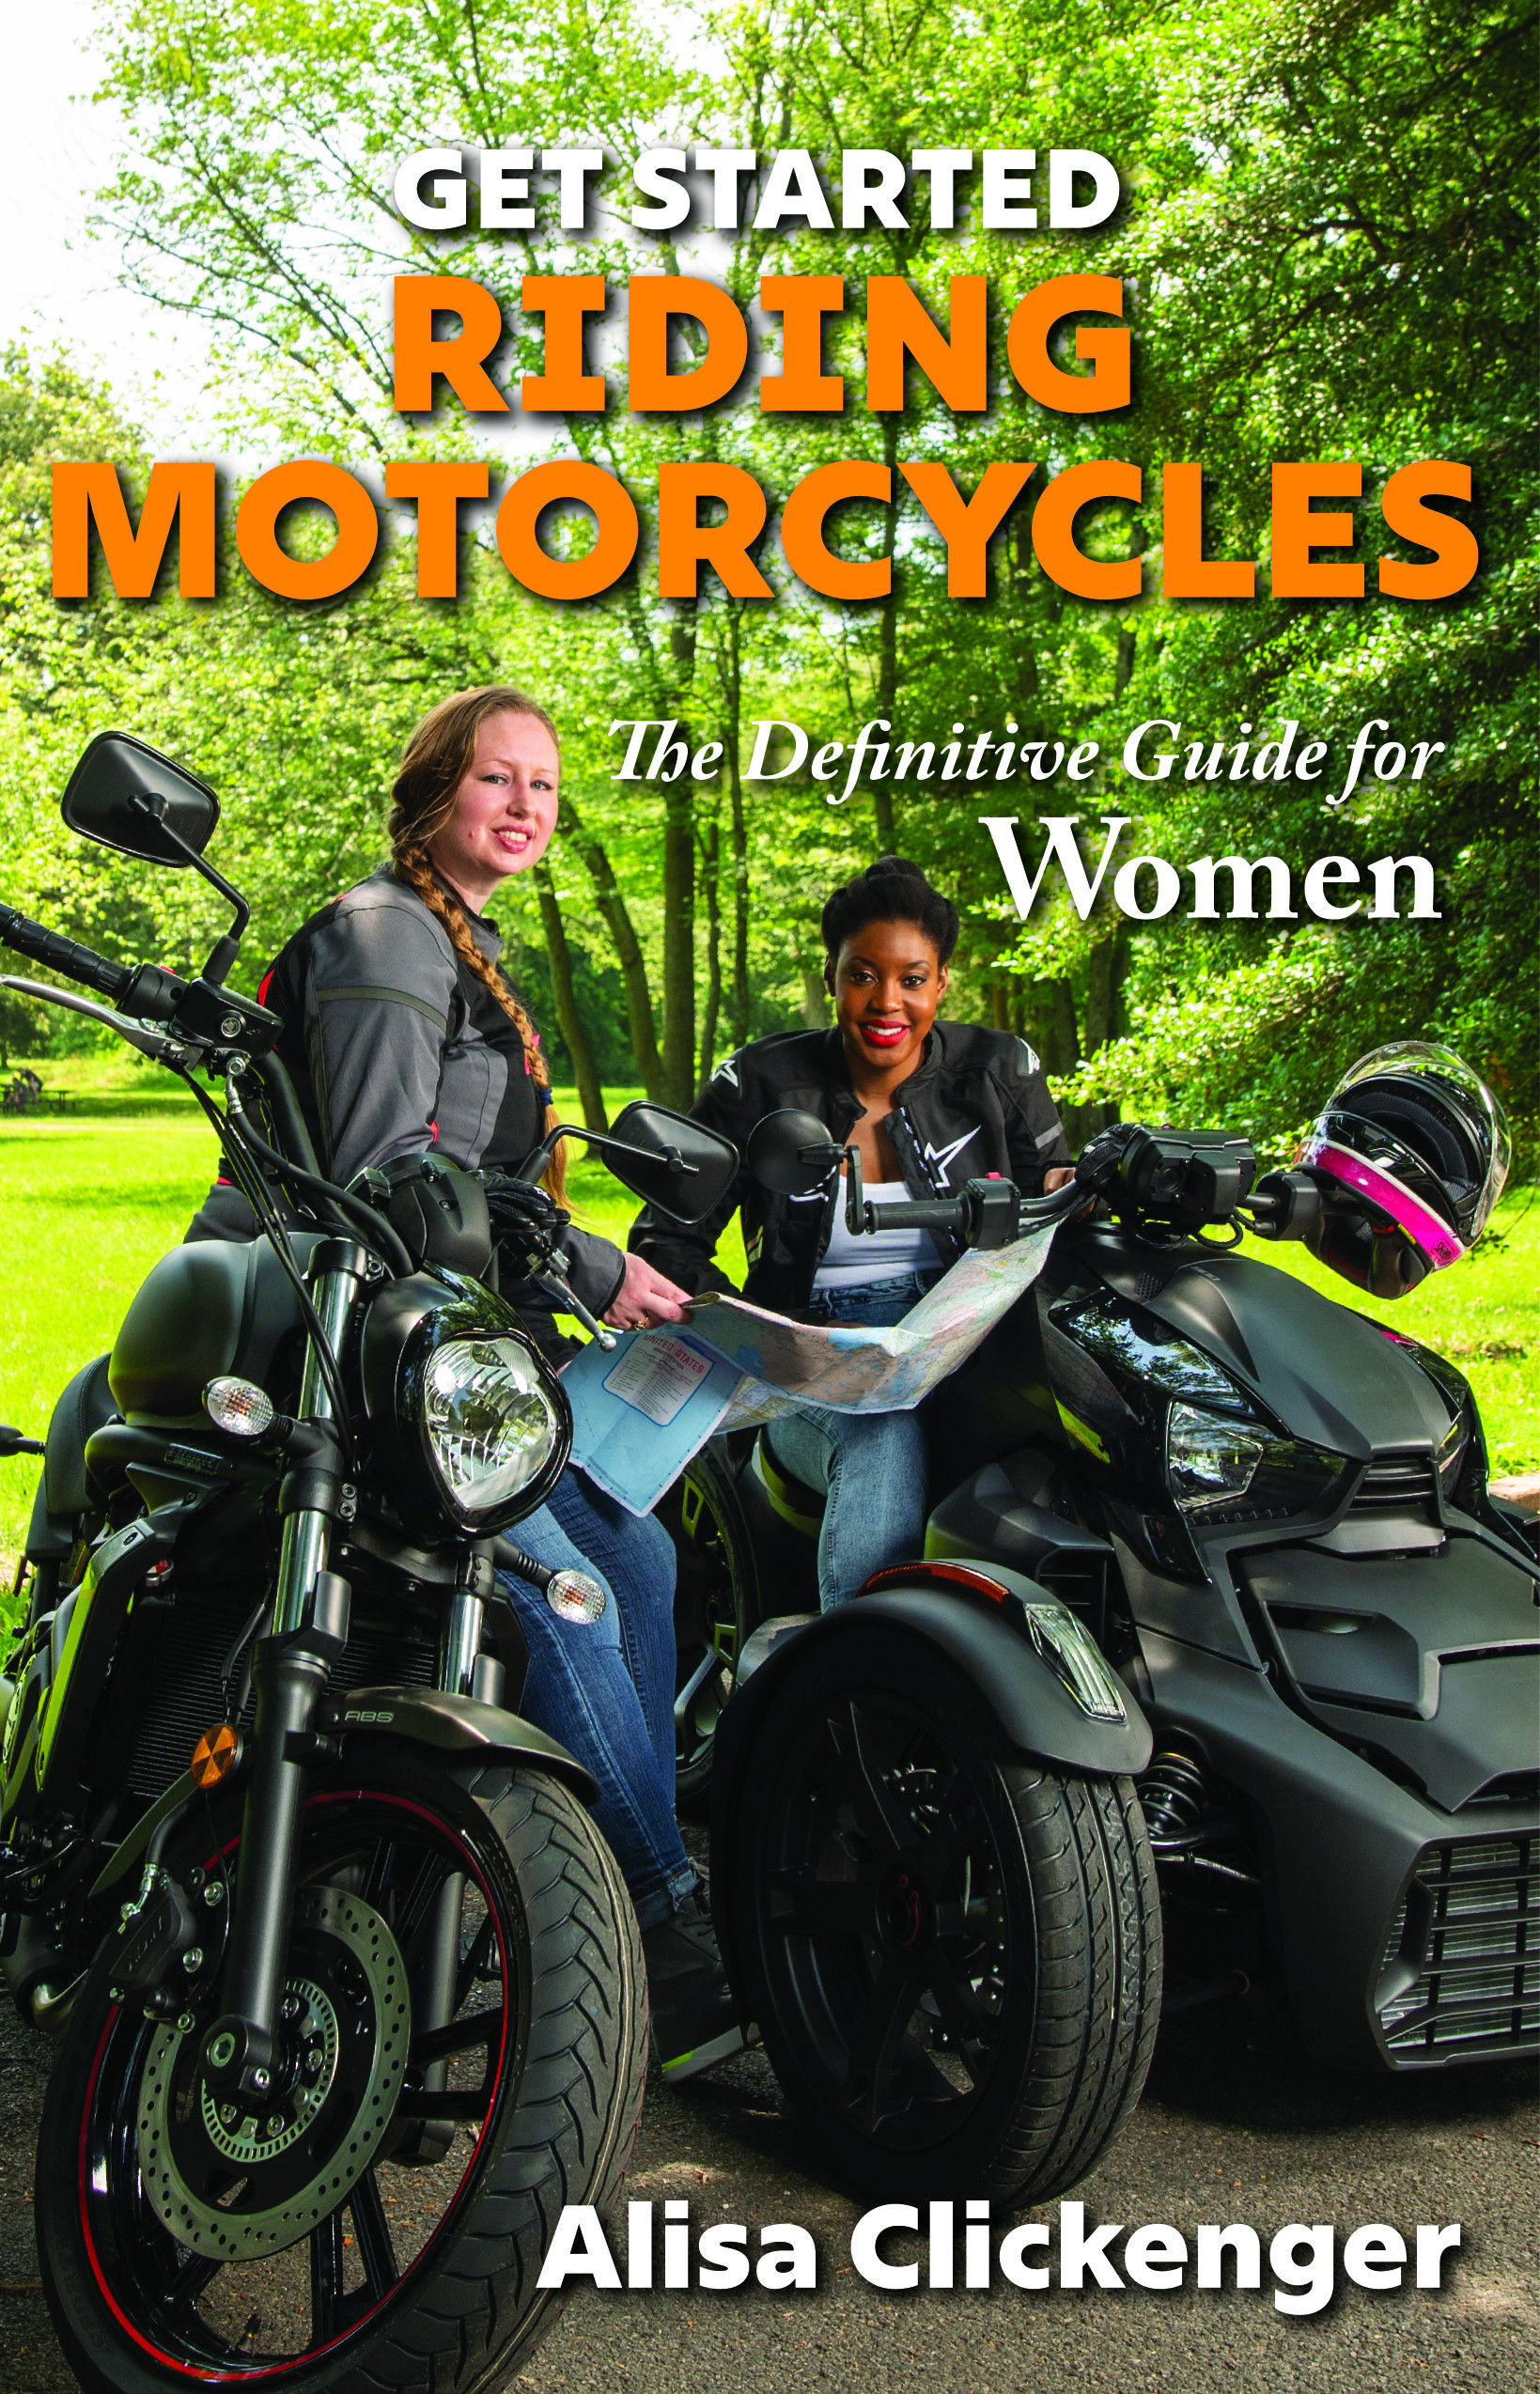 The cover of Get Started Riding Motorcycles: The Definitive Guide for Women. Photo courtesy www.AlisaClickenger.com.